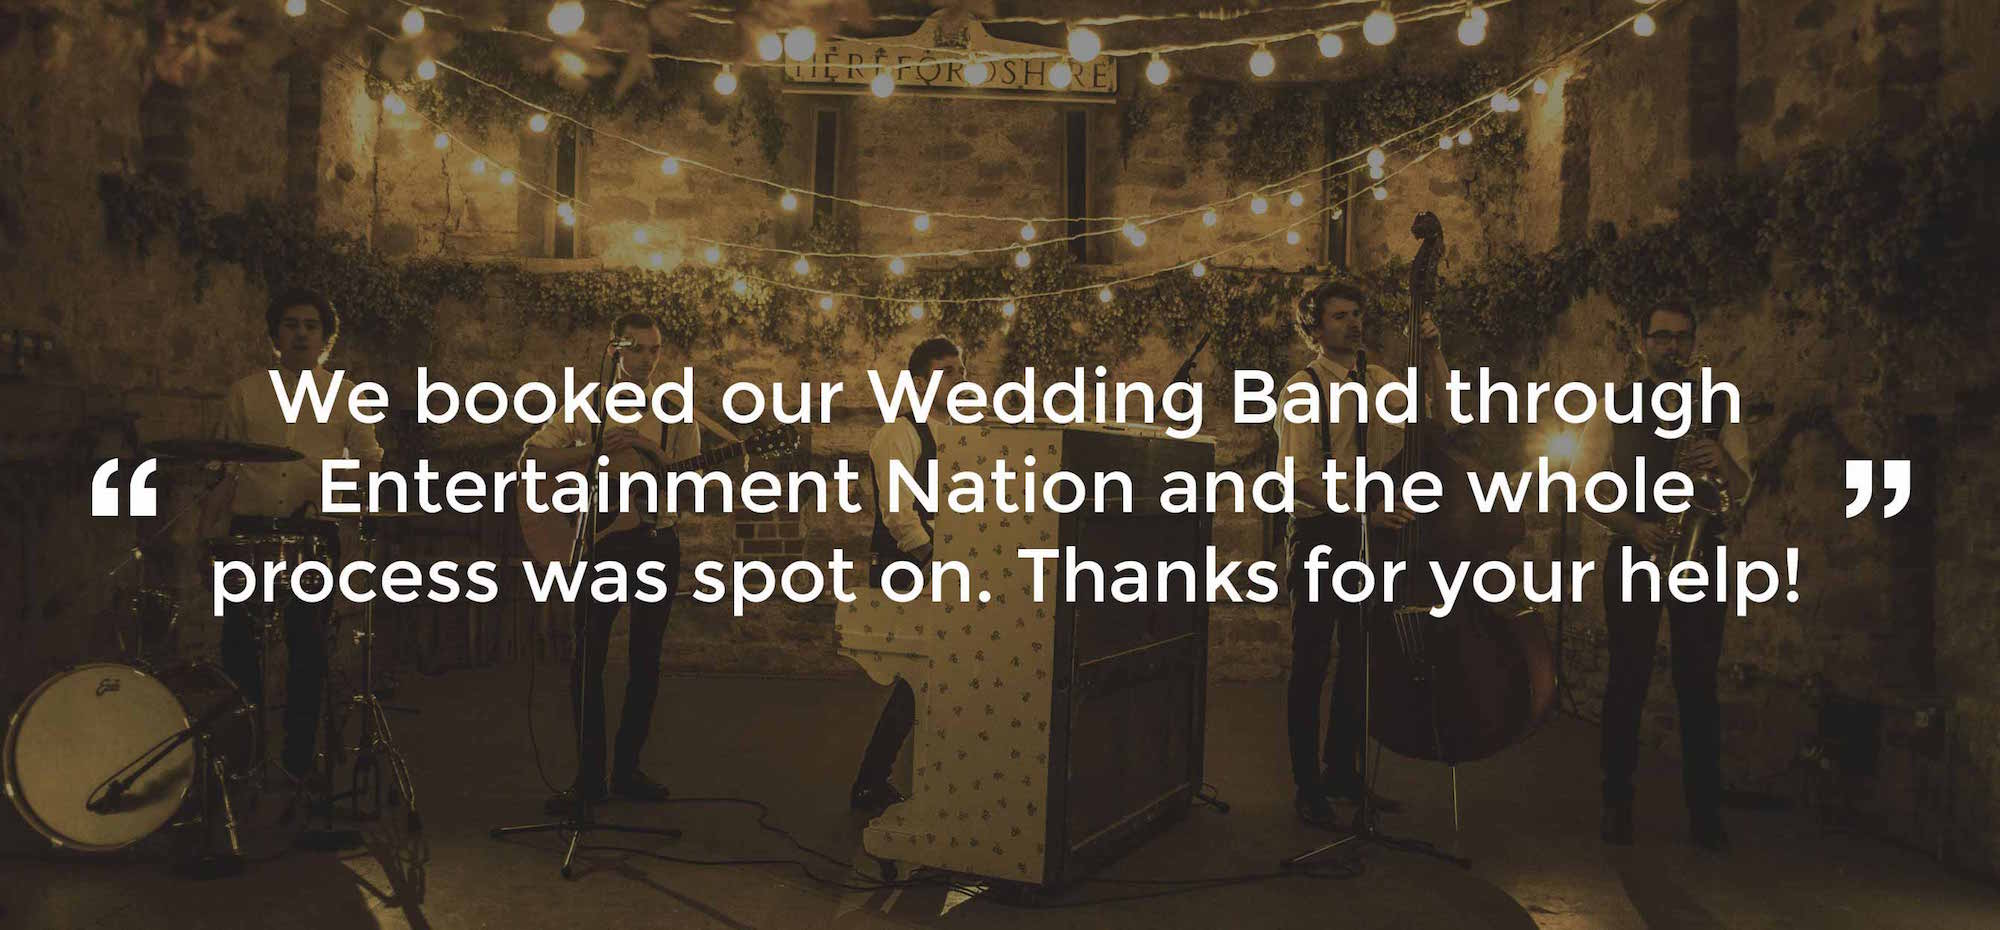 Review of Wedding Band Derby